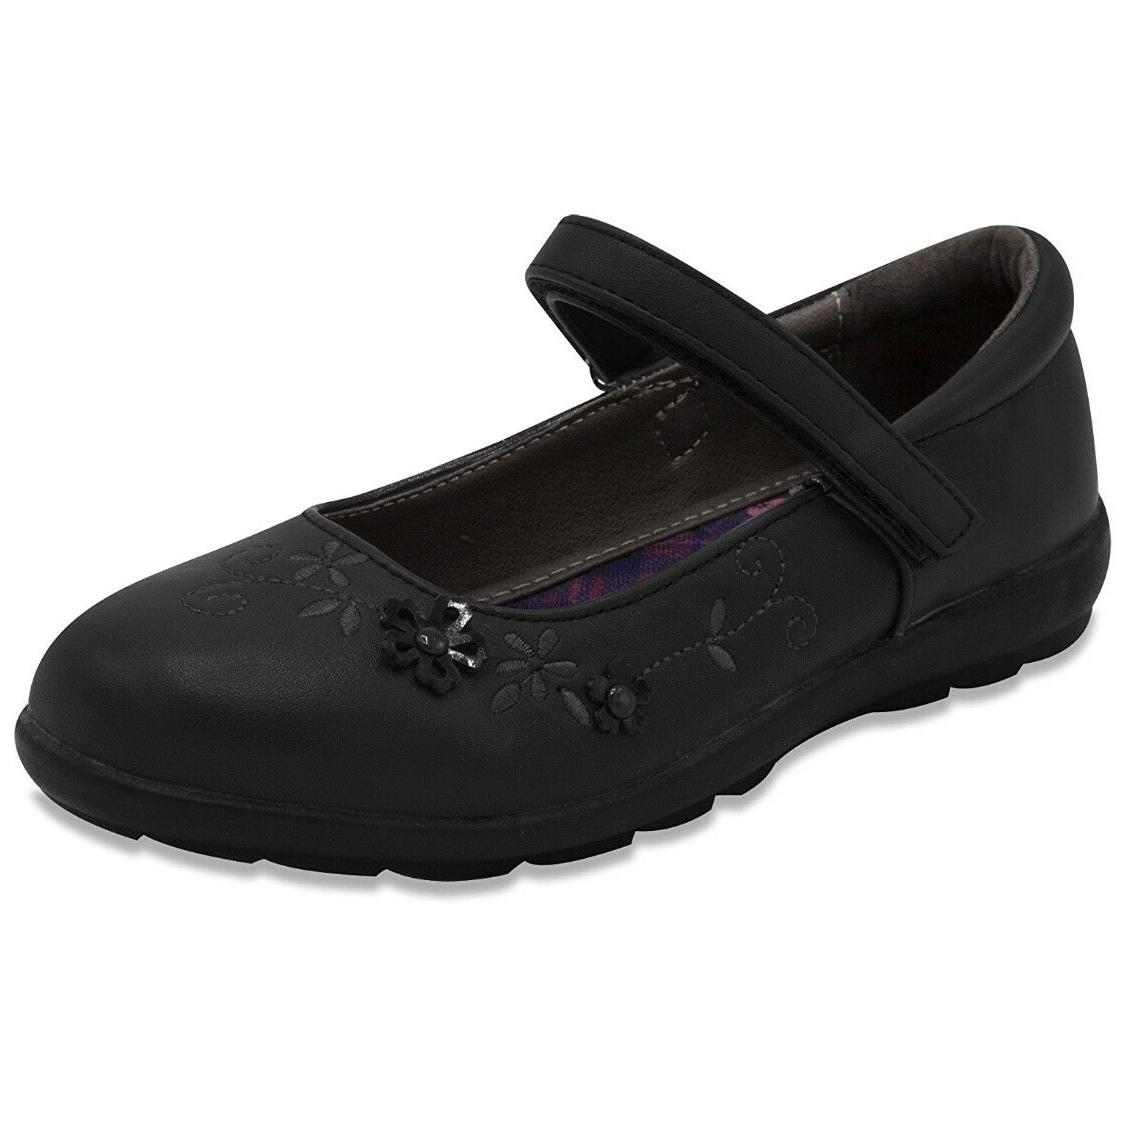 us shoe size girl flat mary jane